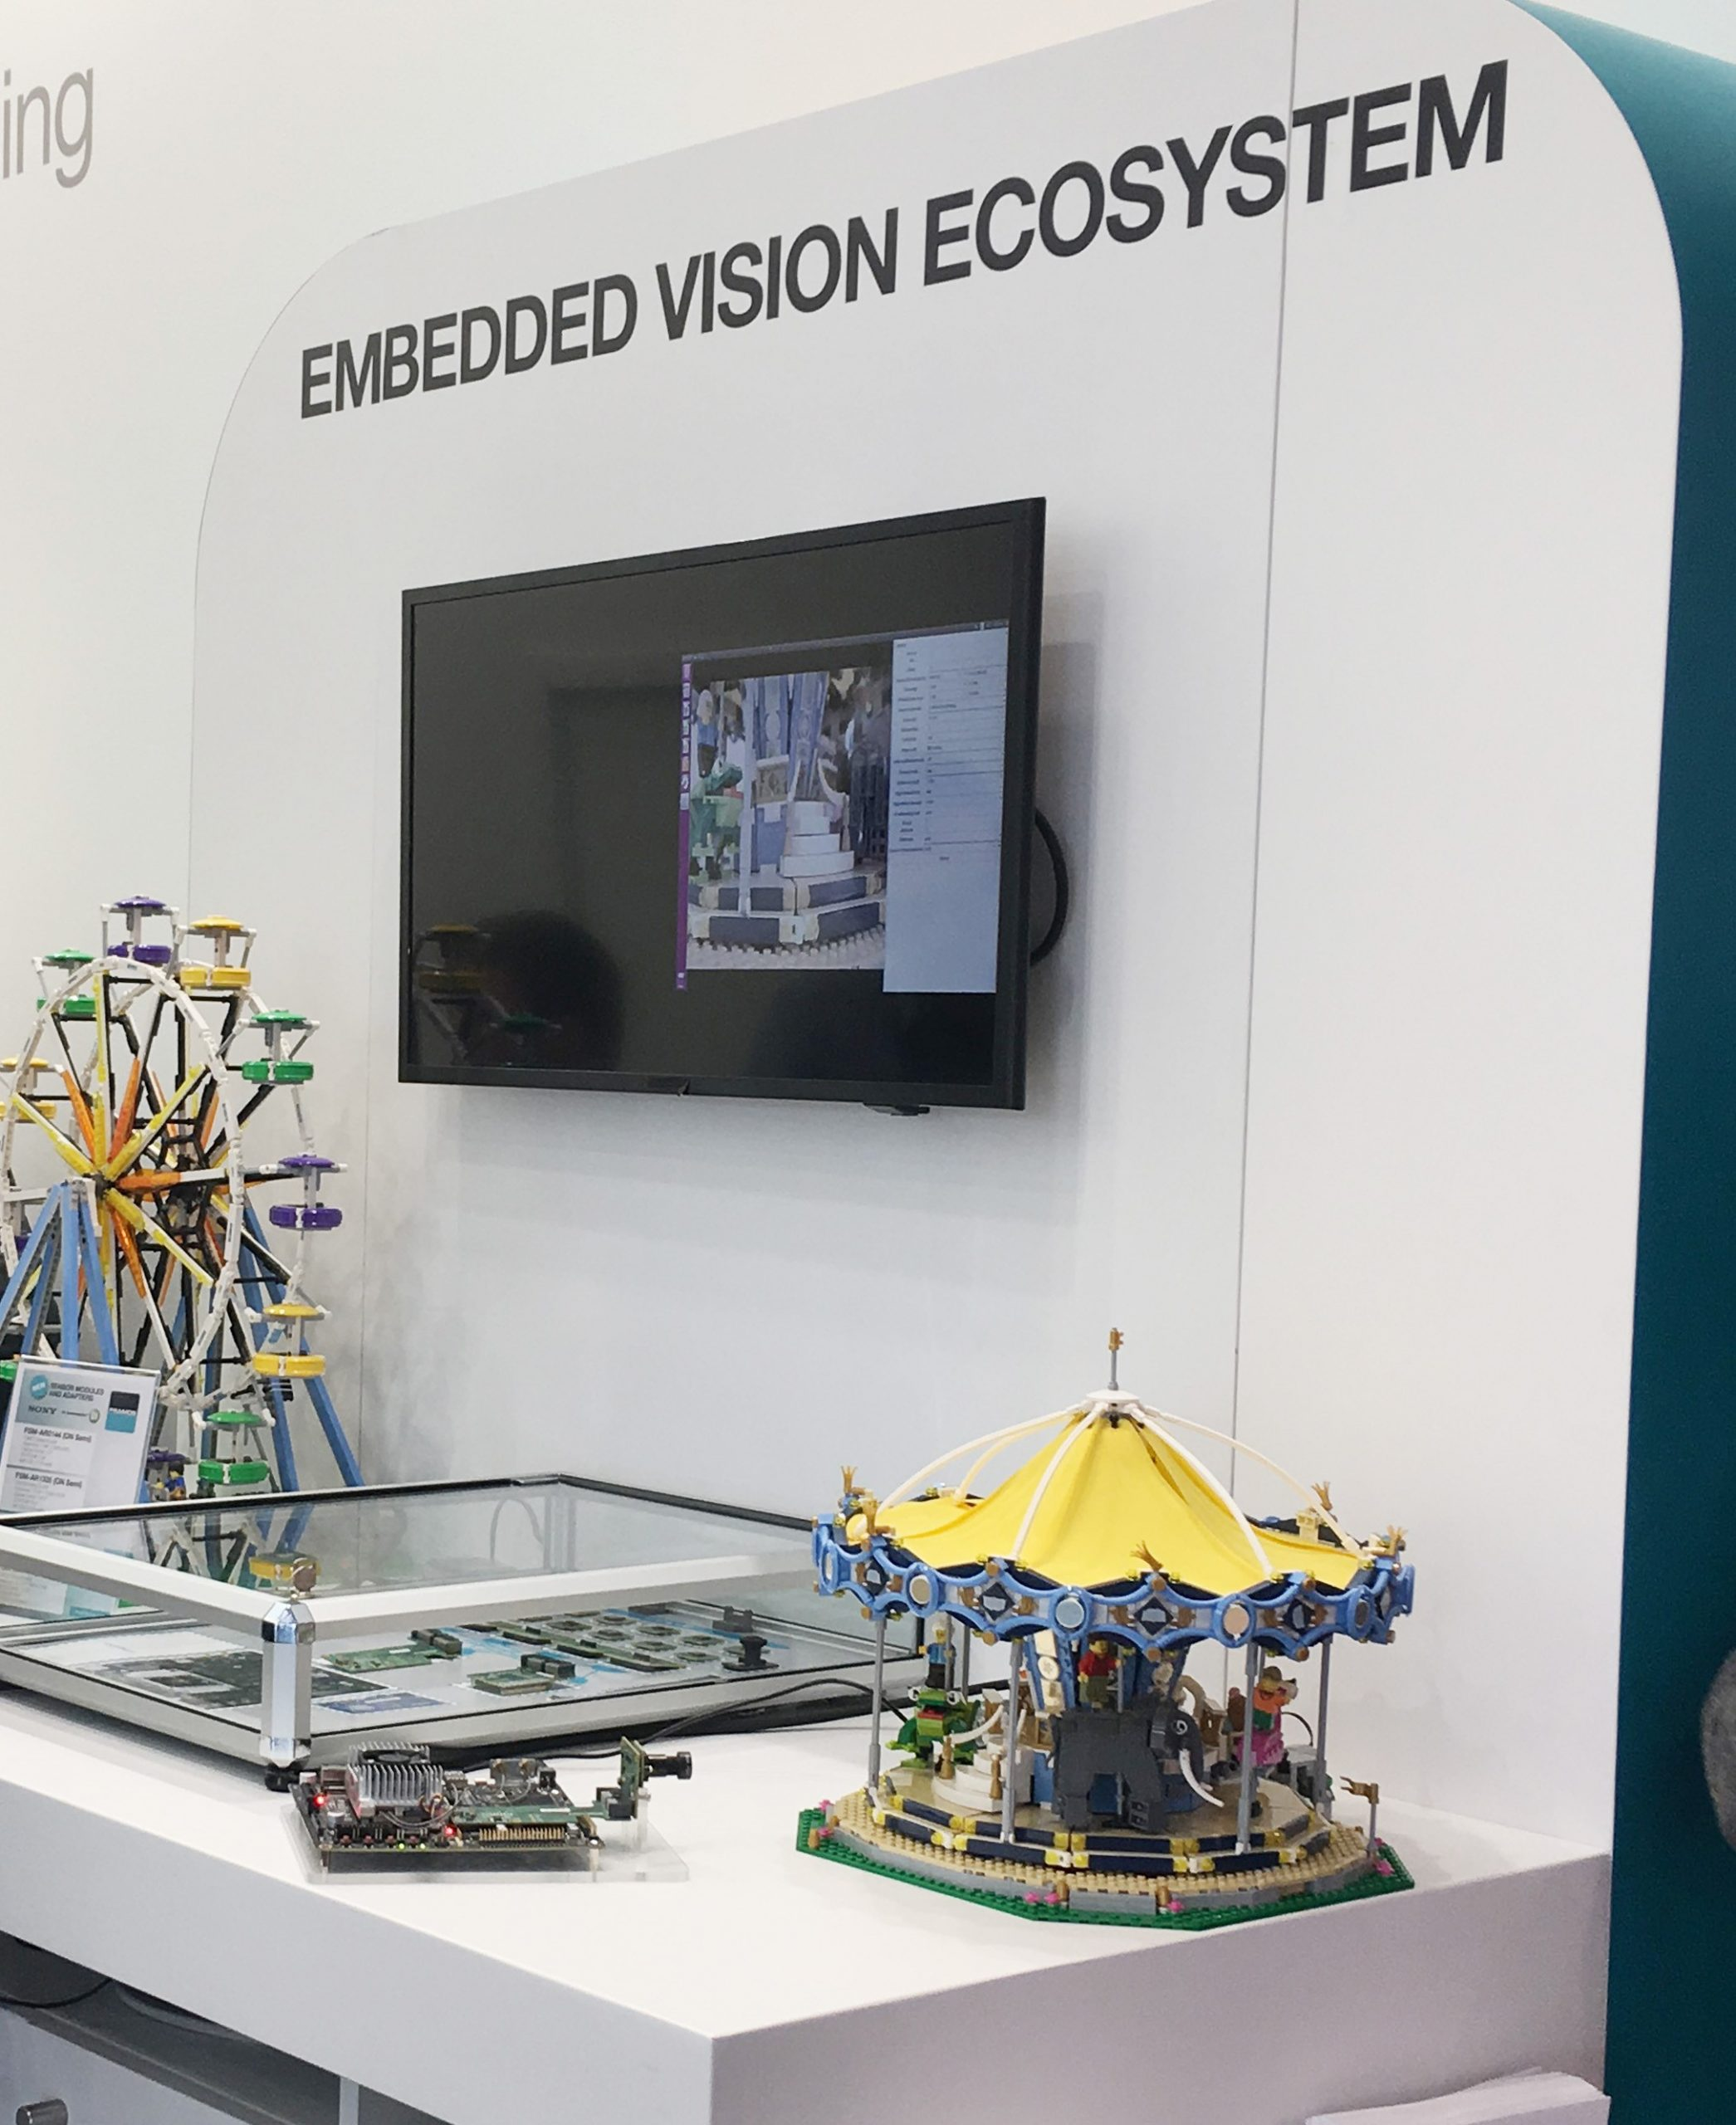 embedded-vision-ecosystem_module_final